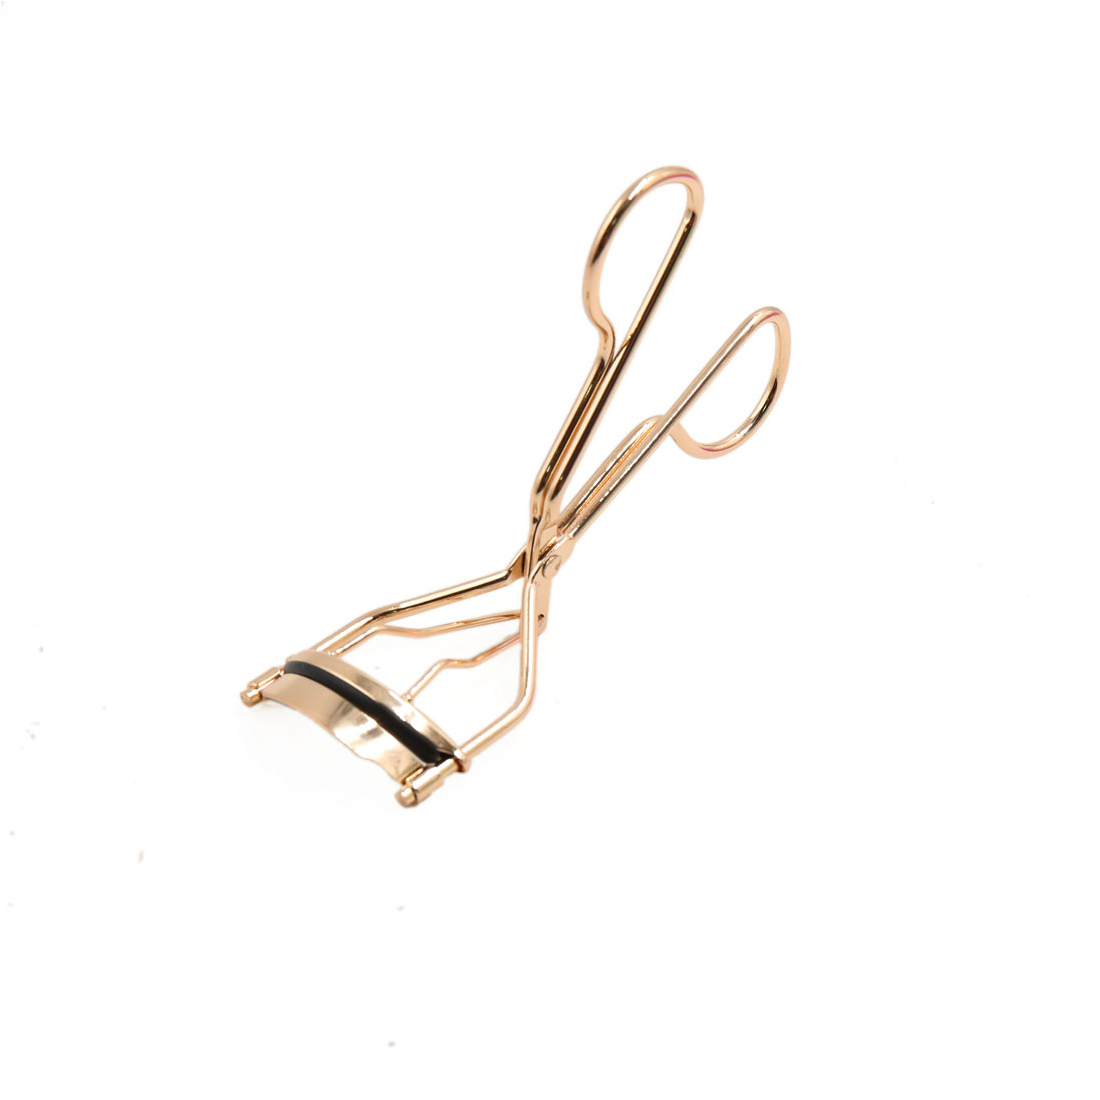 Rose Gold Tone Metal Professional Eyelash Curler Curling Clip Beauty Makeup Tool